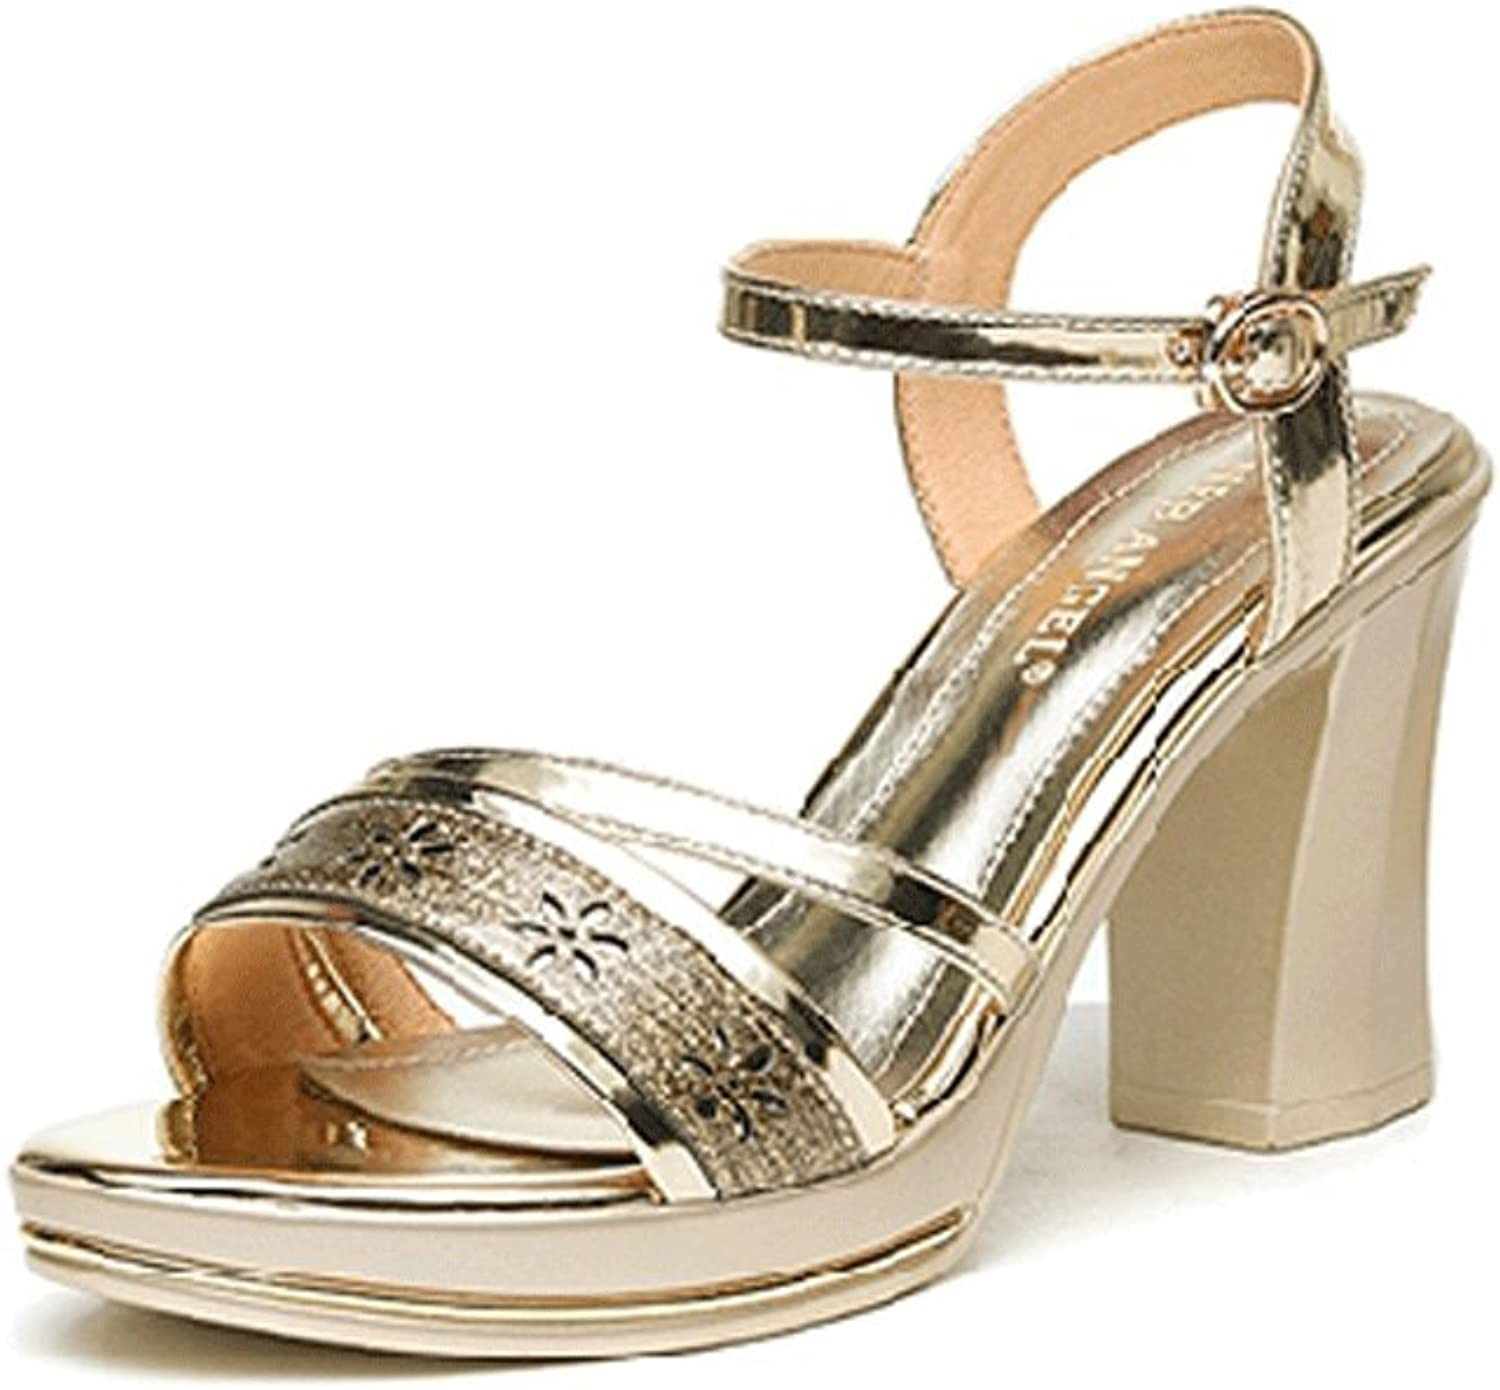 WANGXIAOLIN Middle-Aged Female Sandals High-Heeled Lady Buckle Sandals golden Black (color   gold, Size   36)